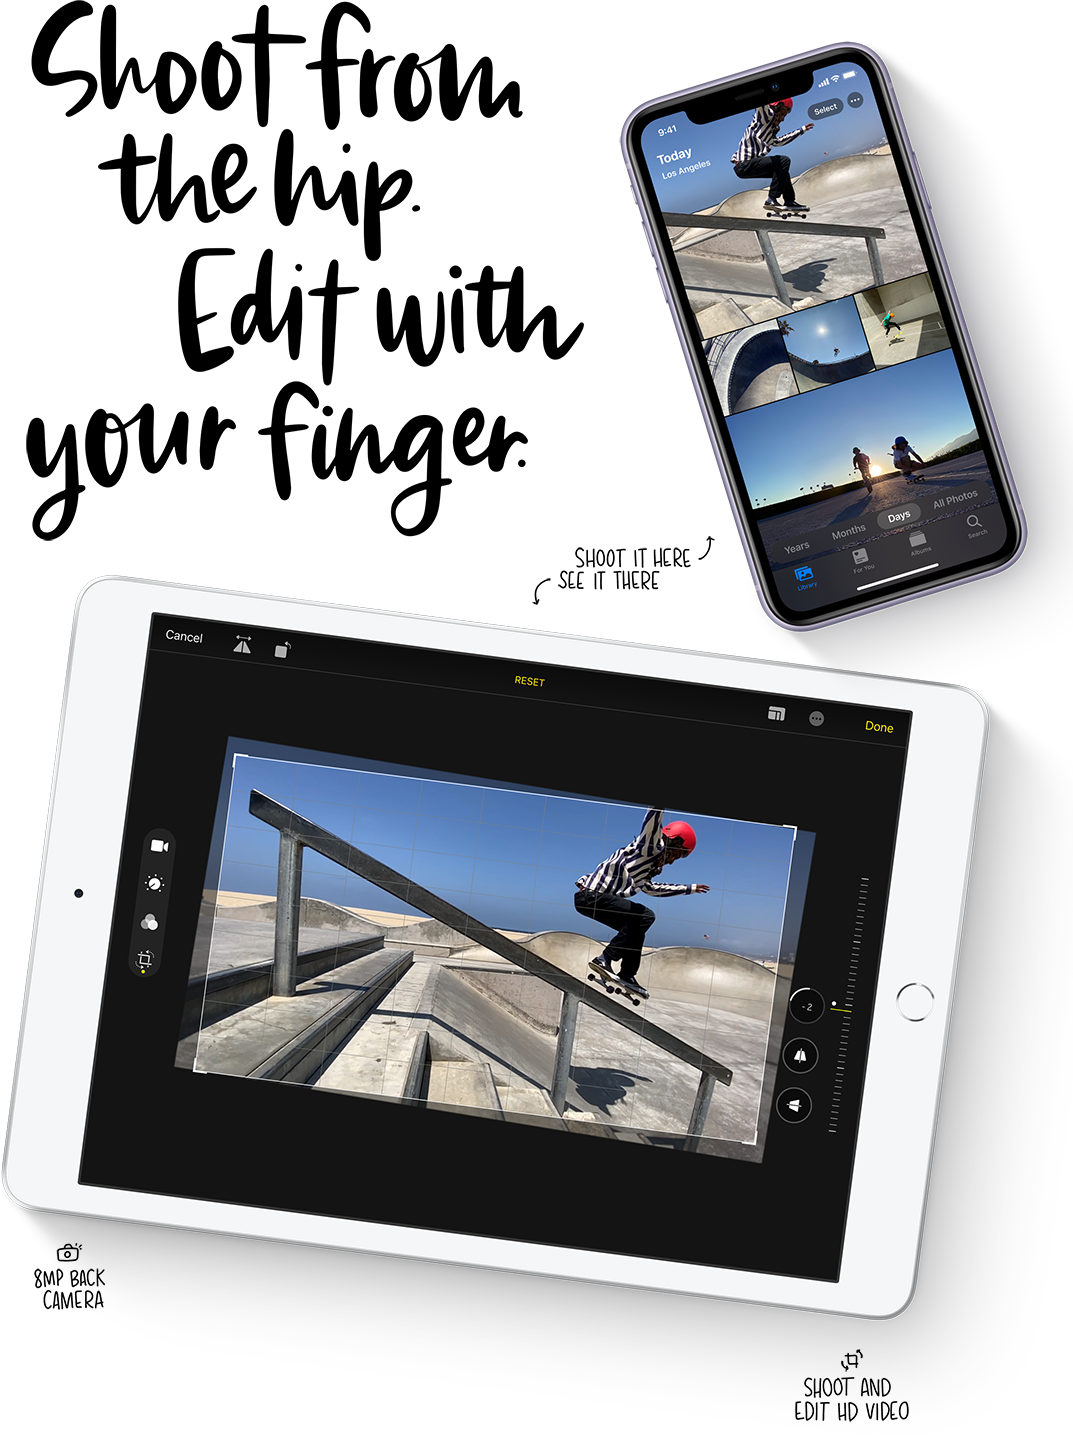 Enhance and edit photos even more easily on iPad 8, no matter where the photo was taken.